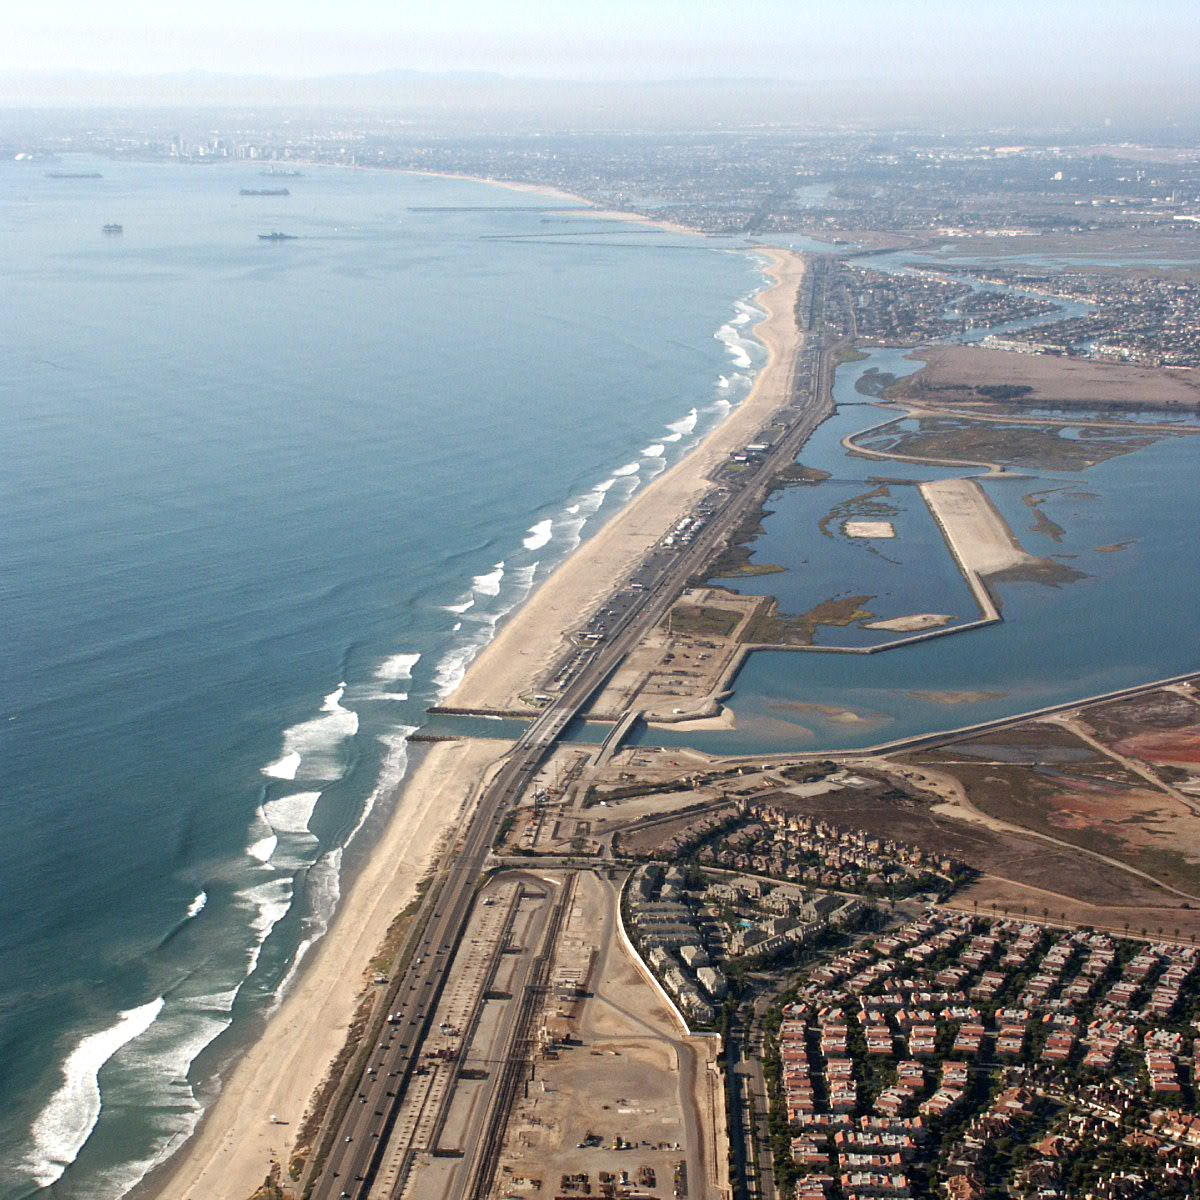 REGIONAL COASTAL ENGINEERING STUDIES - ORANGE COUNTY, CA